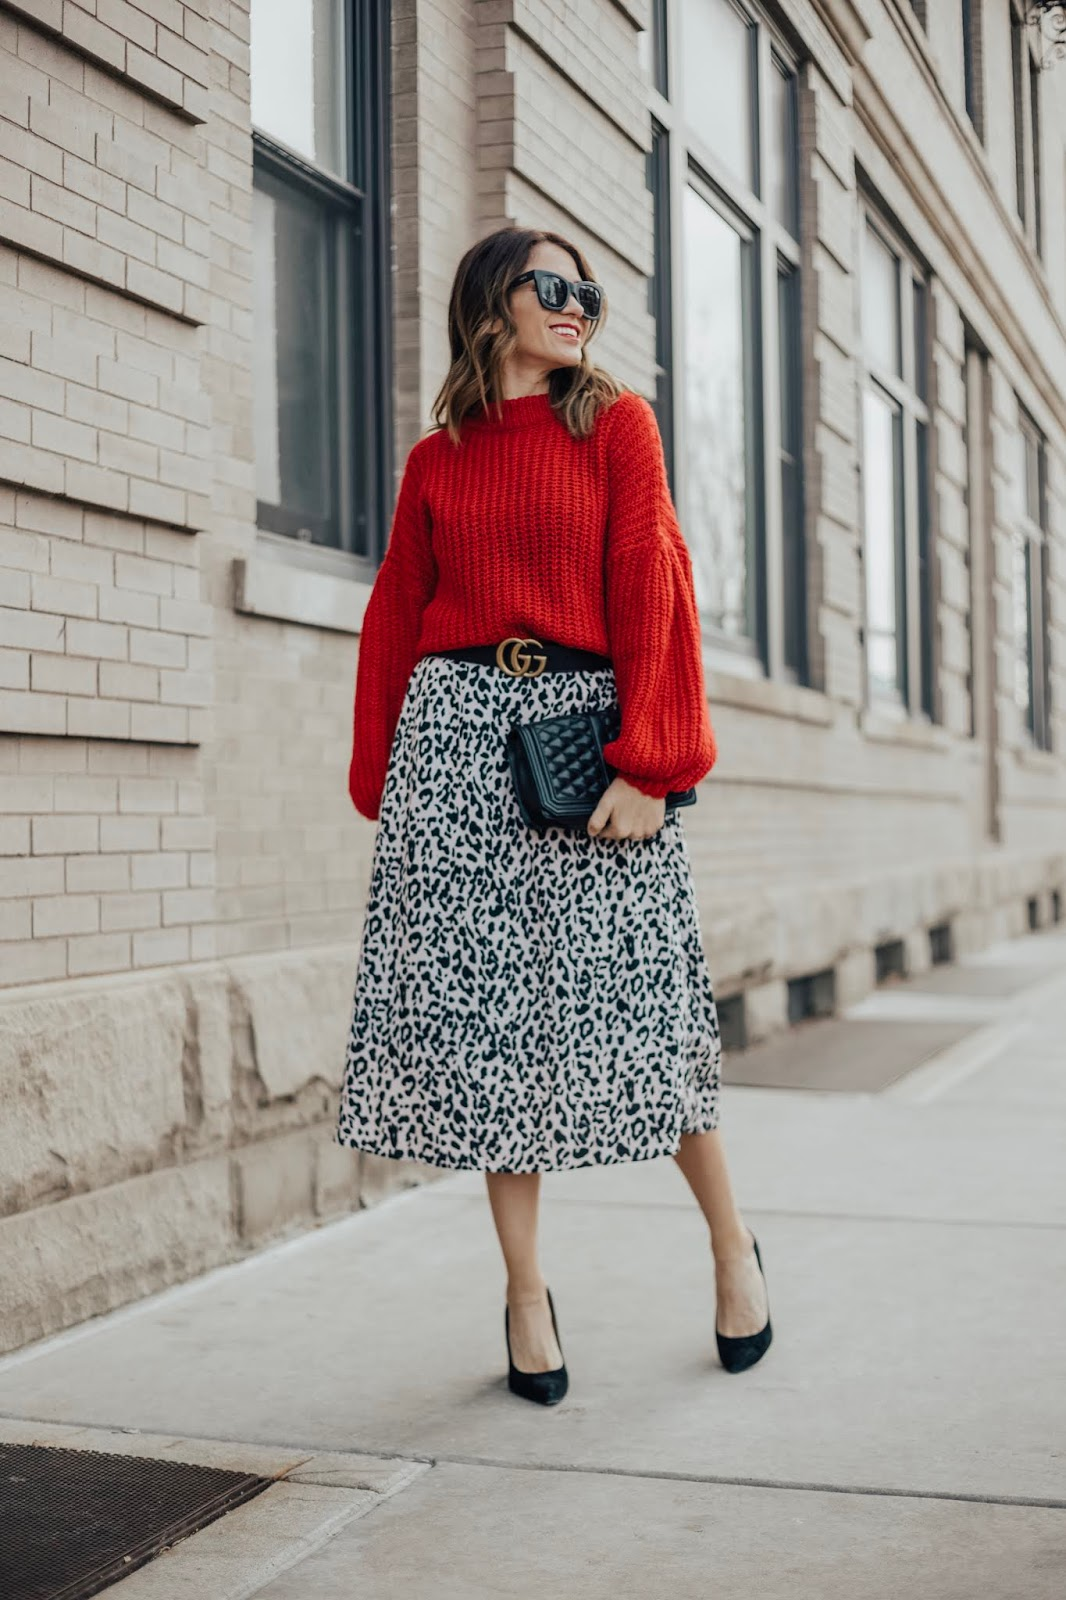 Sweater and Skirt With Gucci Belt